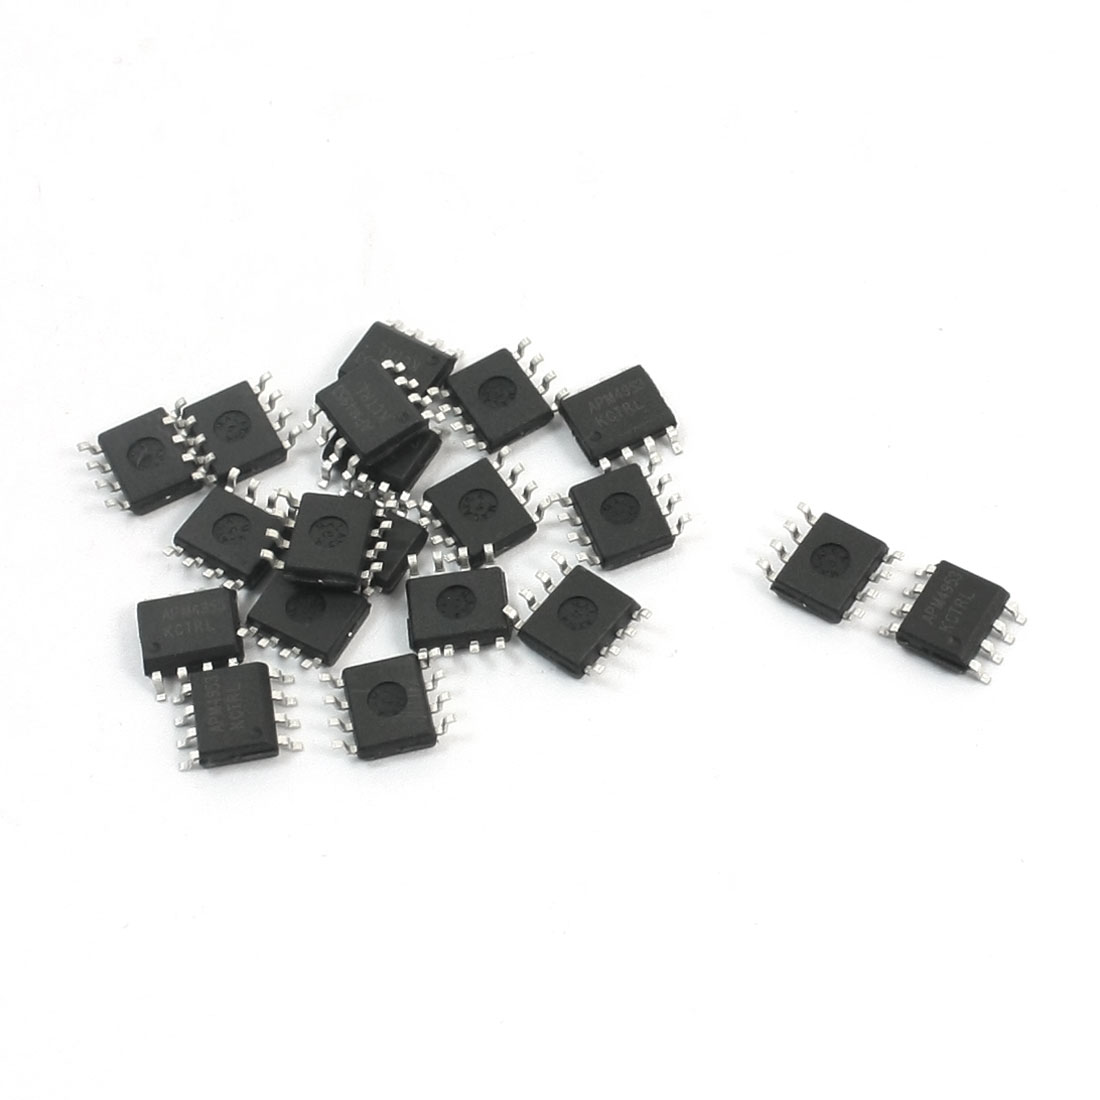 20Pcs Electronic Parts APM4953 SOP Package Type 8 Pin Dual P-Channel Enhancement Mode MOSFET